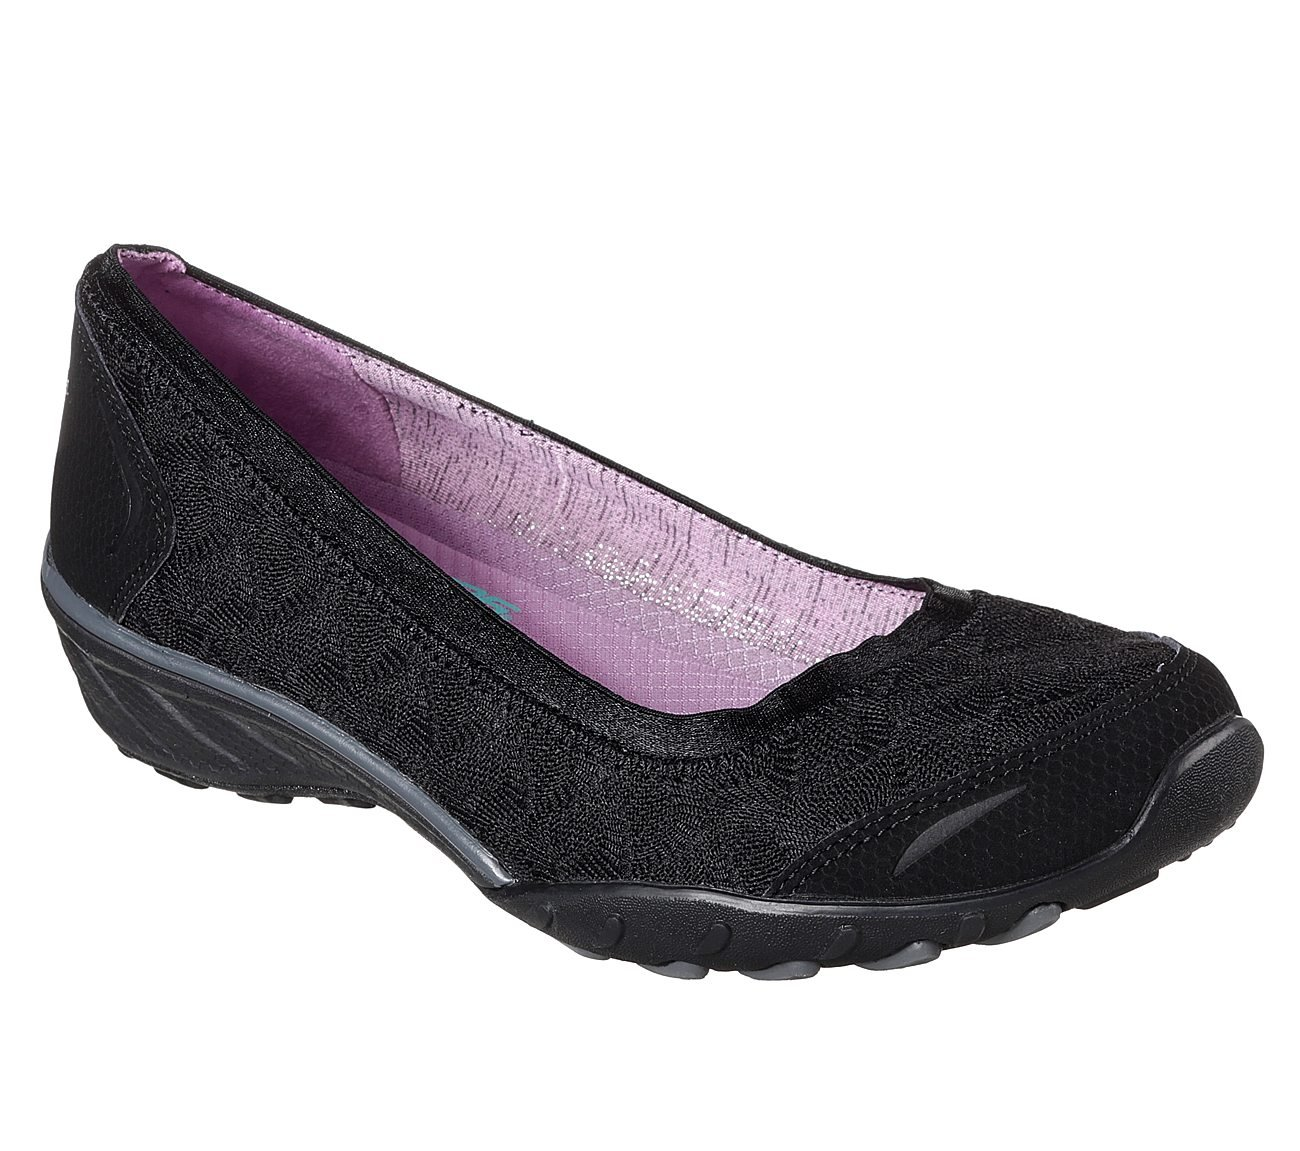 Skechers Womens Savvy - Play The Game Wedge Pump B074KHZPTJ 6.5 B(M) US|Black